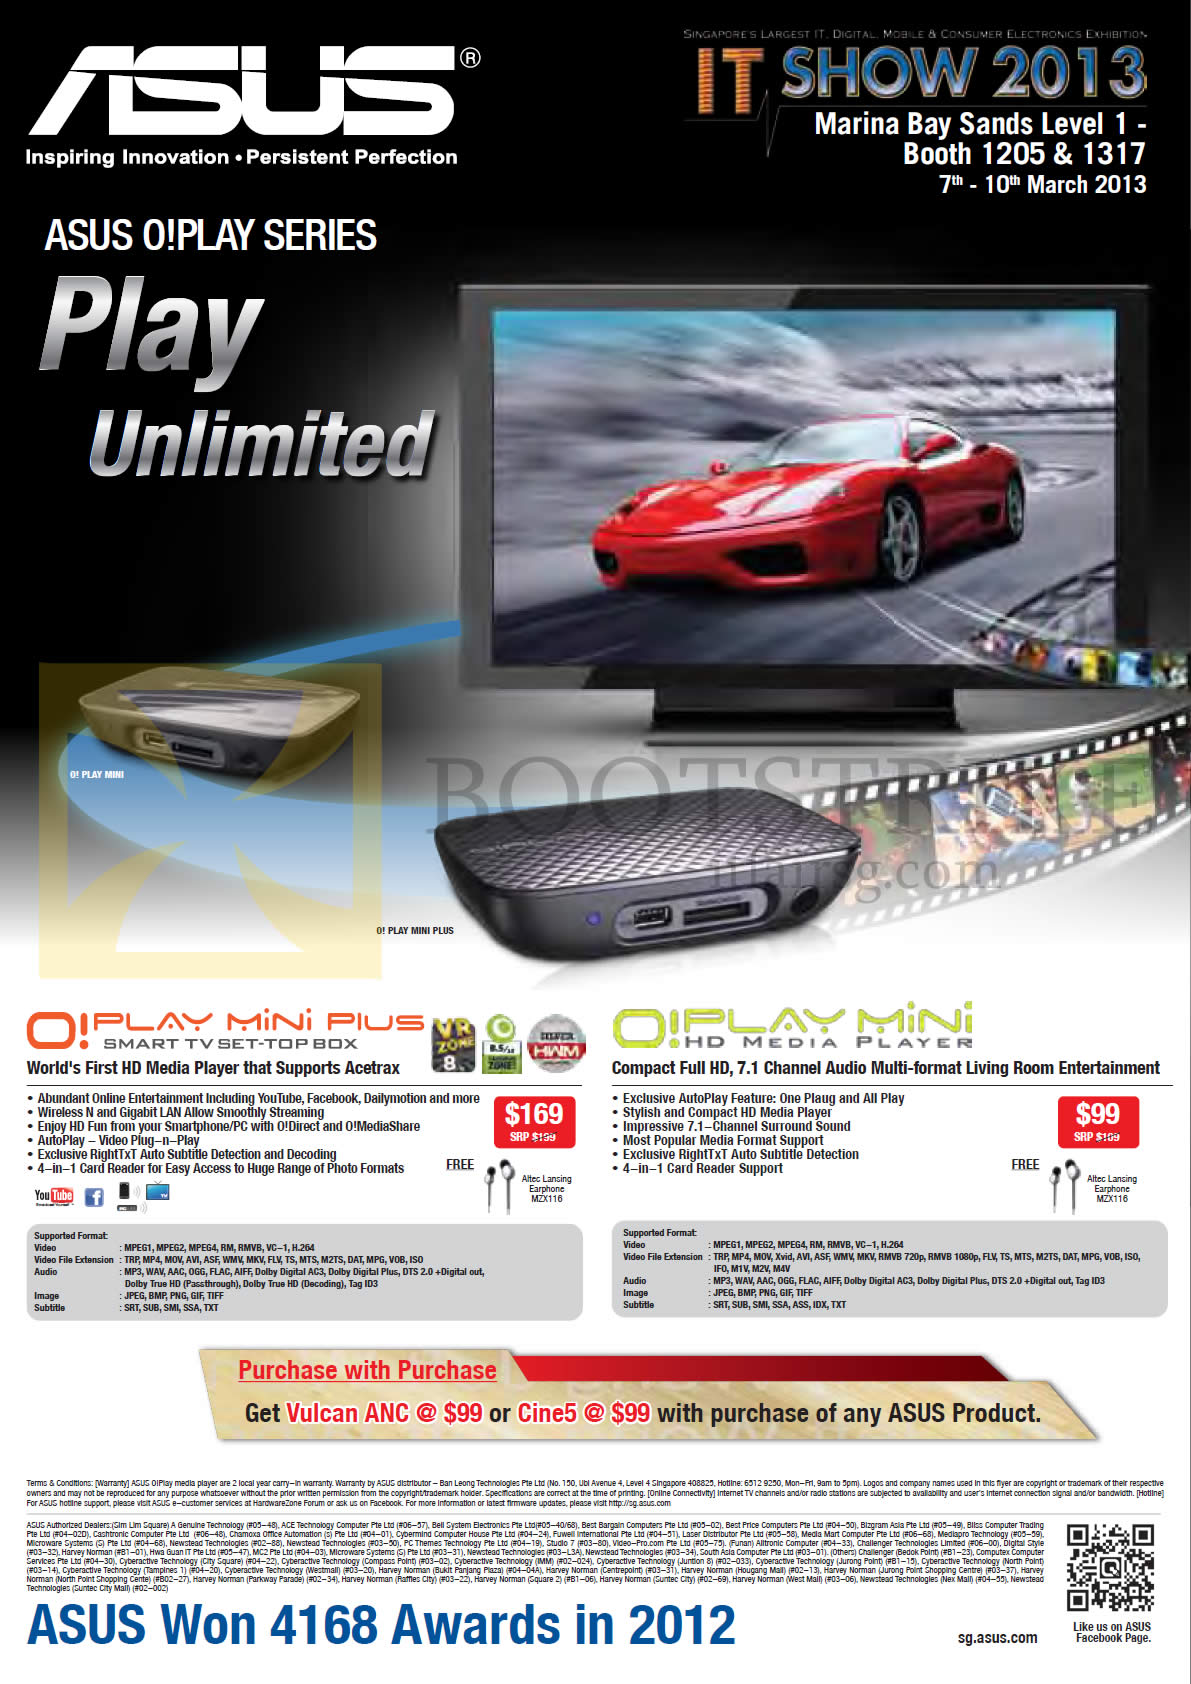 IT SHOW 2013 price list image brochure of ASUS Media Player O Play Mini Plus, O Play Mini HD Media Player